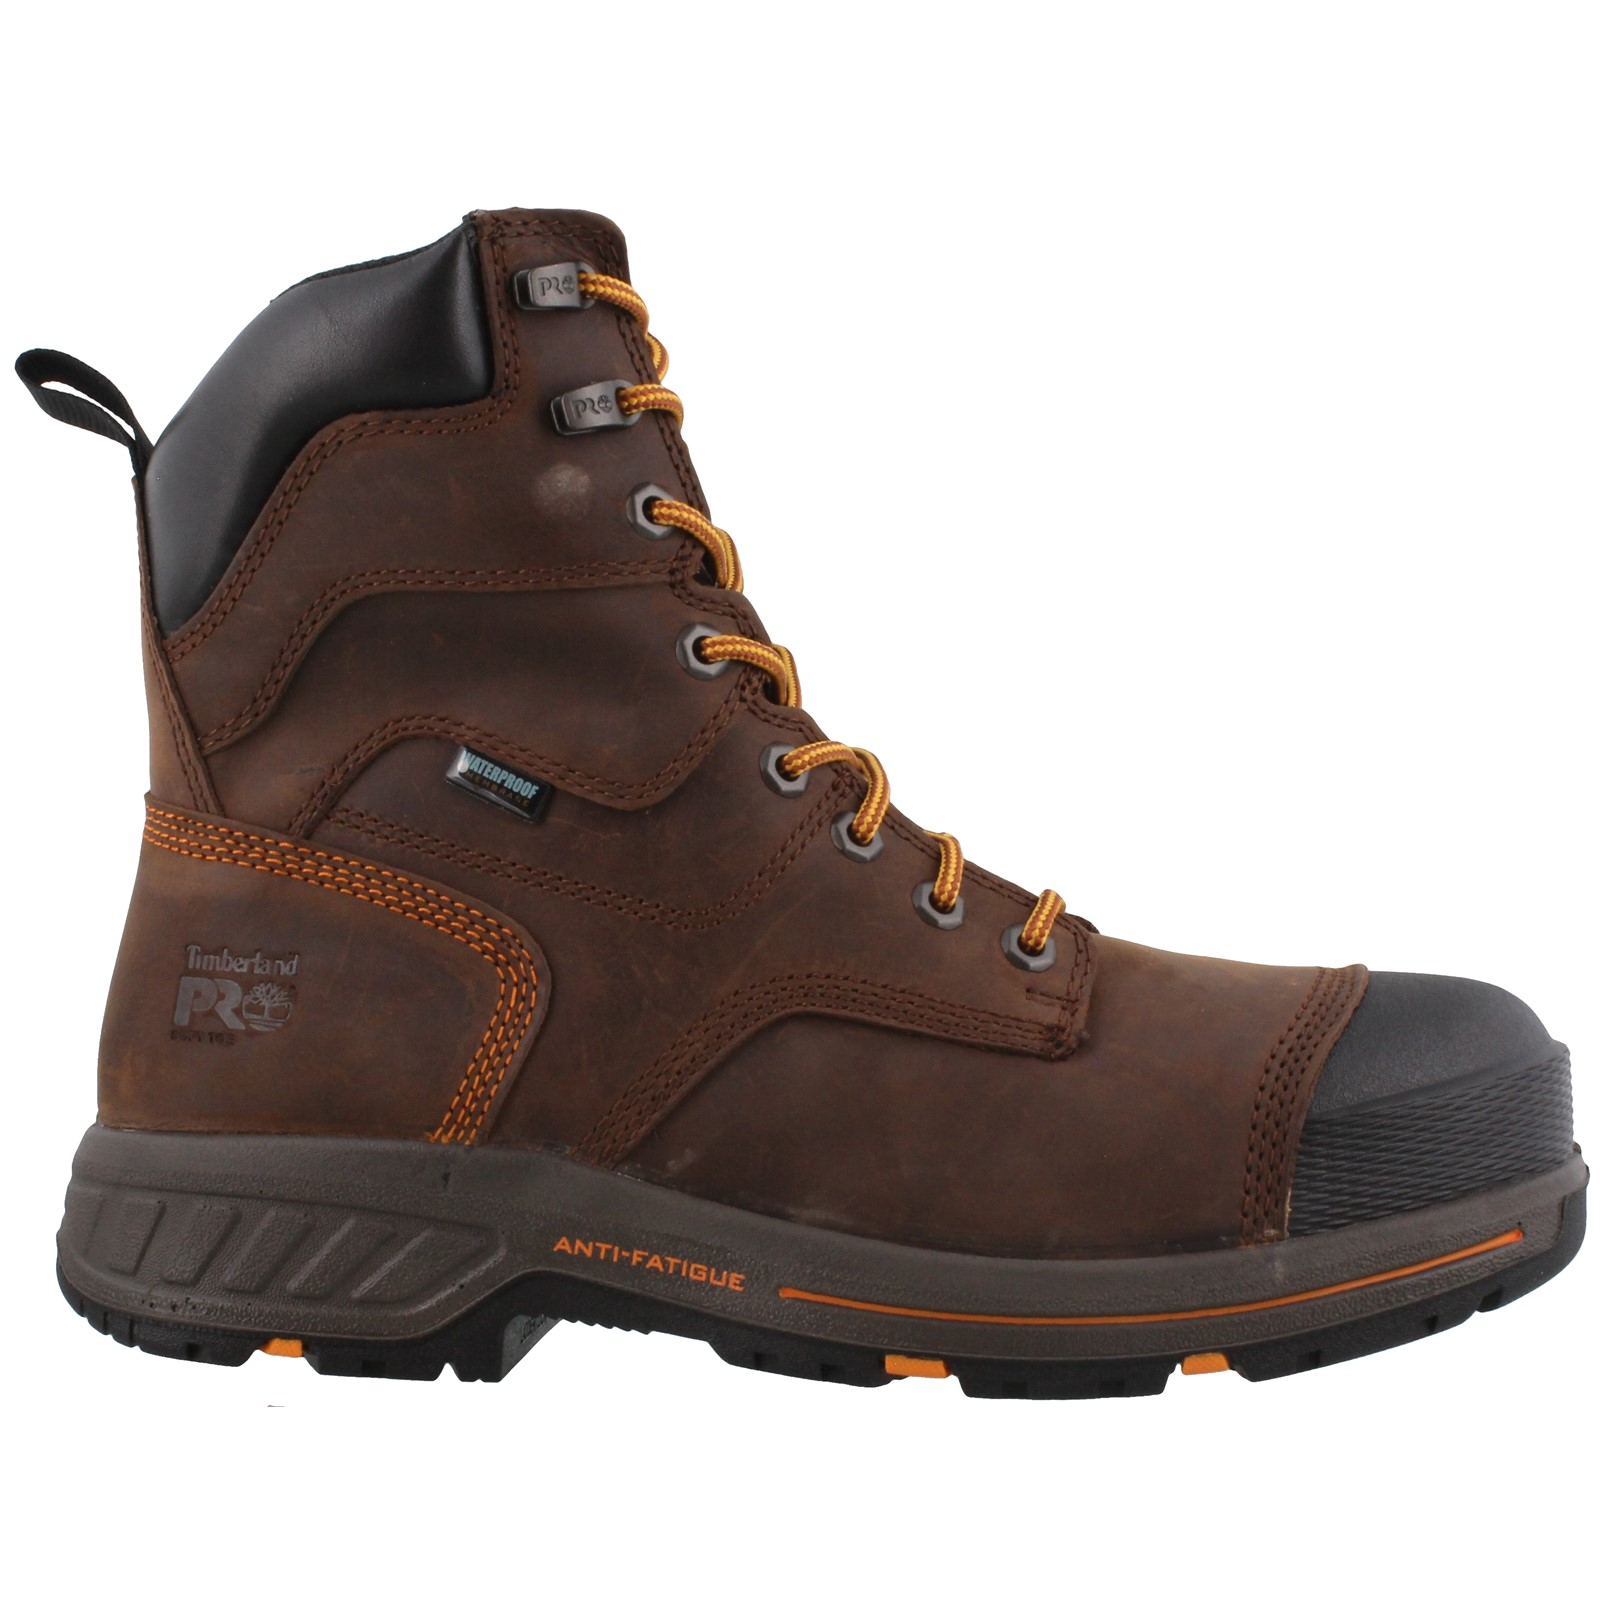 Men's TIMBERLAND PRO, HELIX HD 8 INCH WORK BOOTS